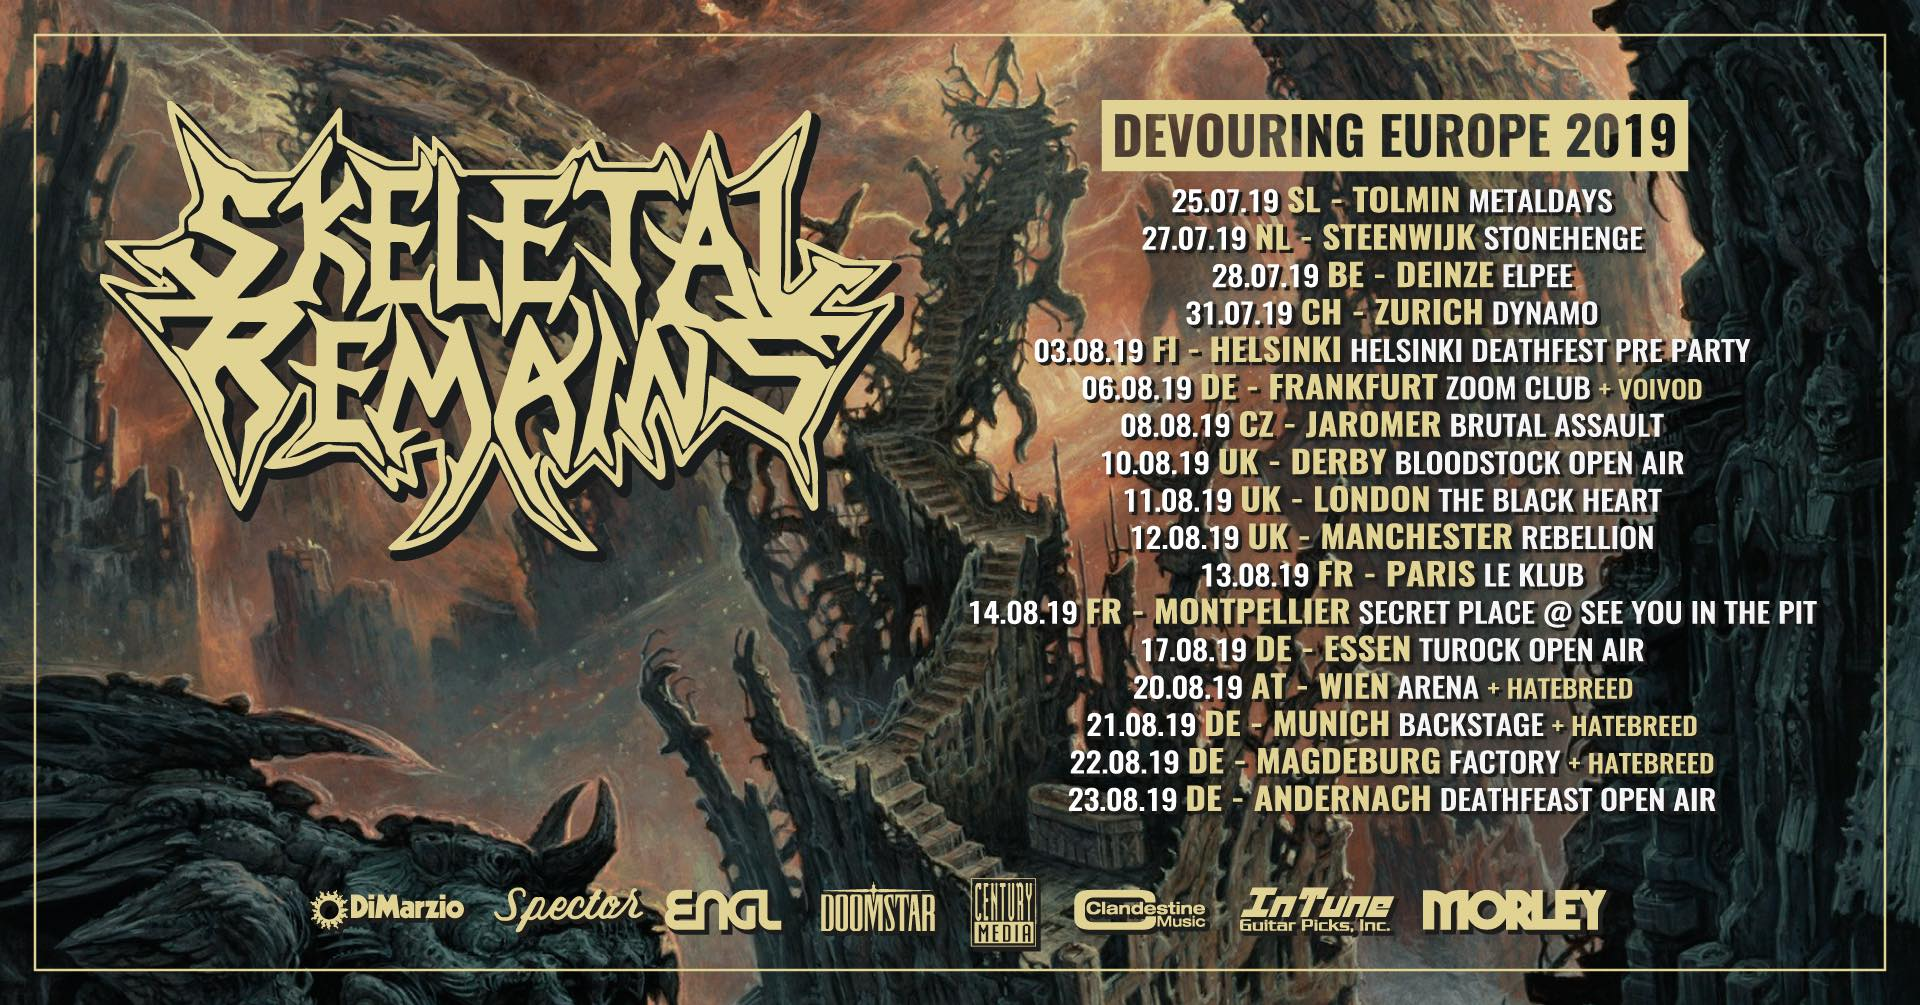 Skeletal Remains 2019 Tour Dates Europe